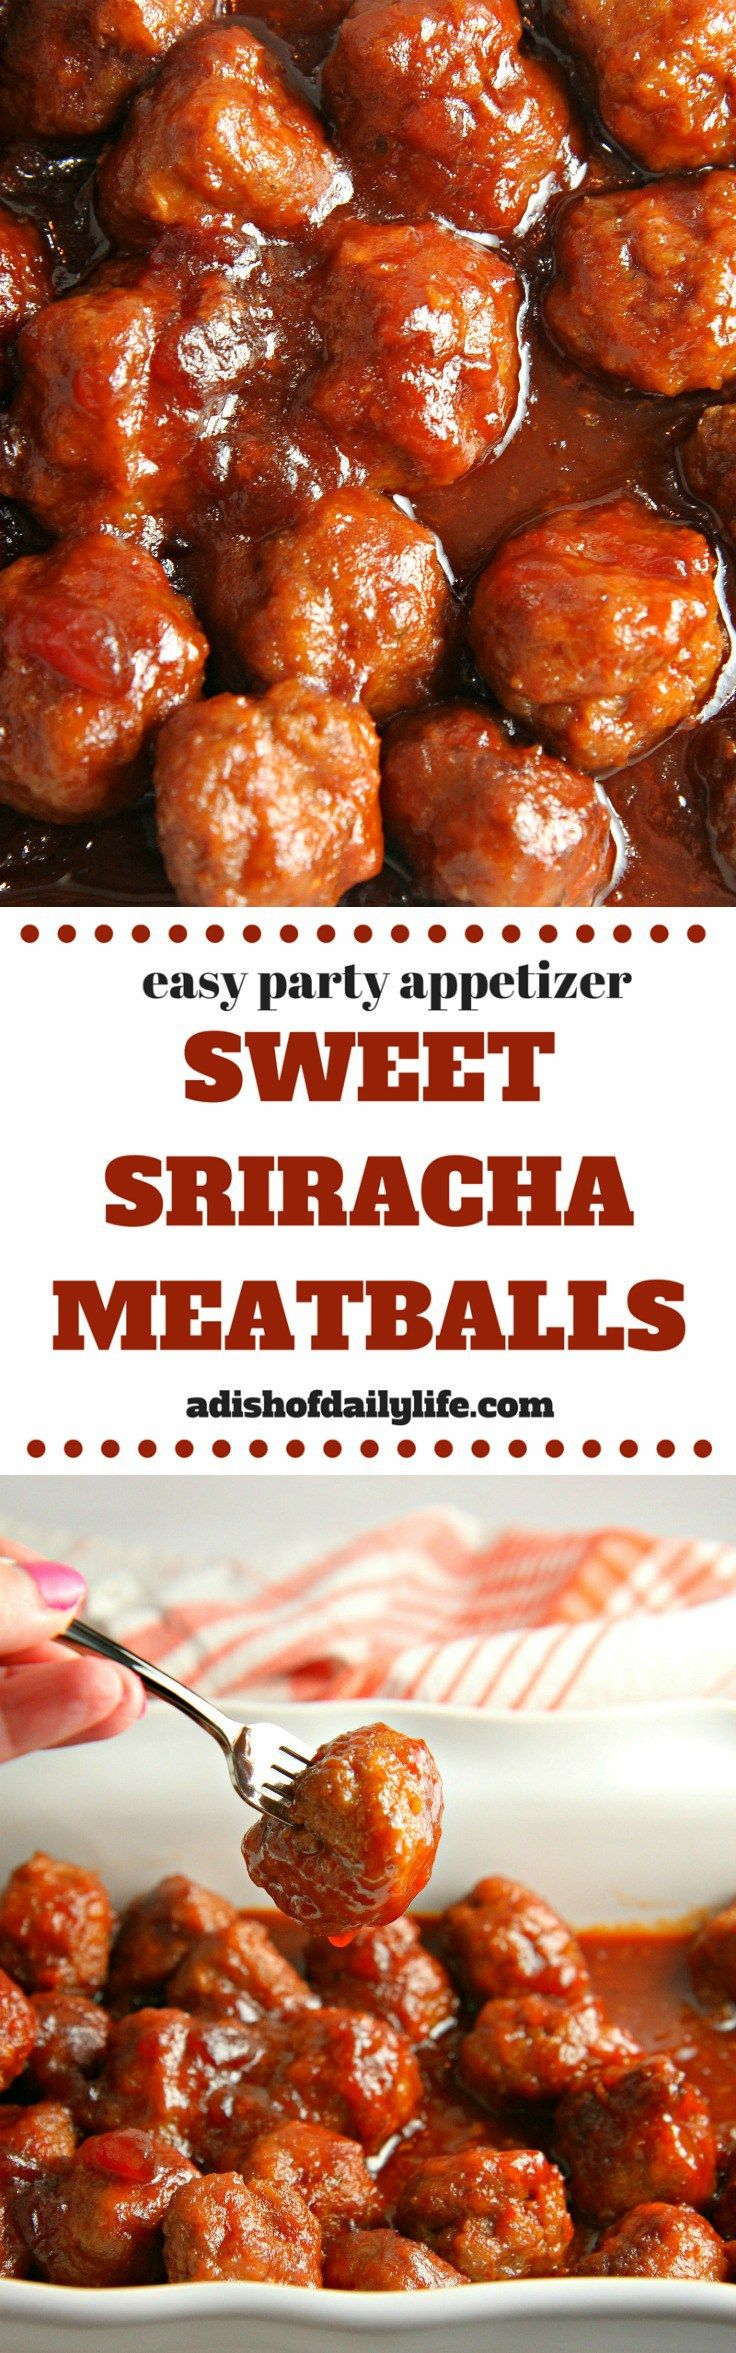 These too-easy Sweet-and-Sour Meatballs are the perfect appetizer for your next party. Meatballs may be thoroughly cooked without sauce and frozen. Thaw and reheat with sauce.